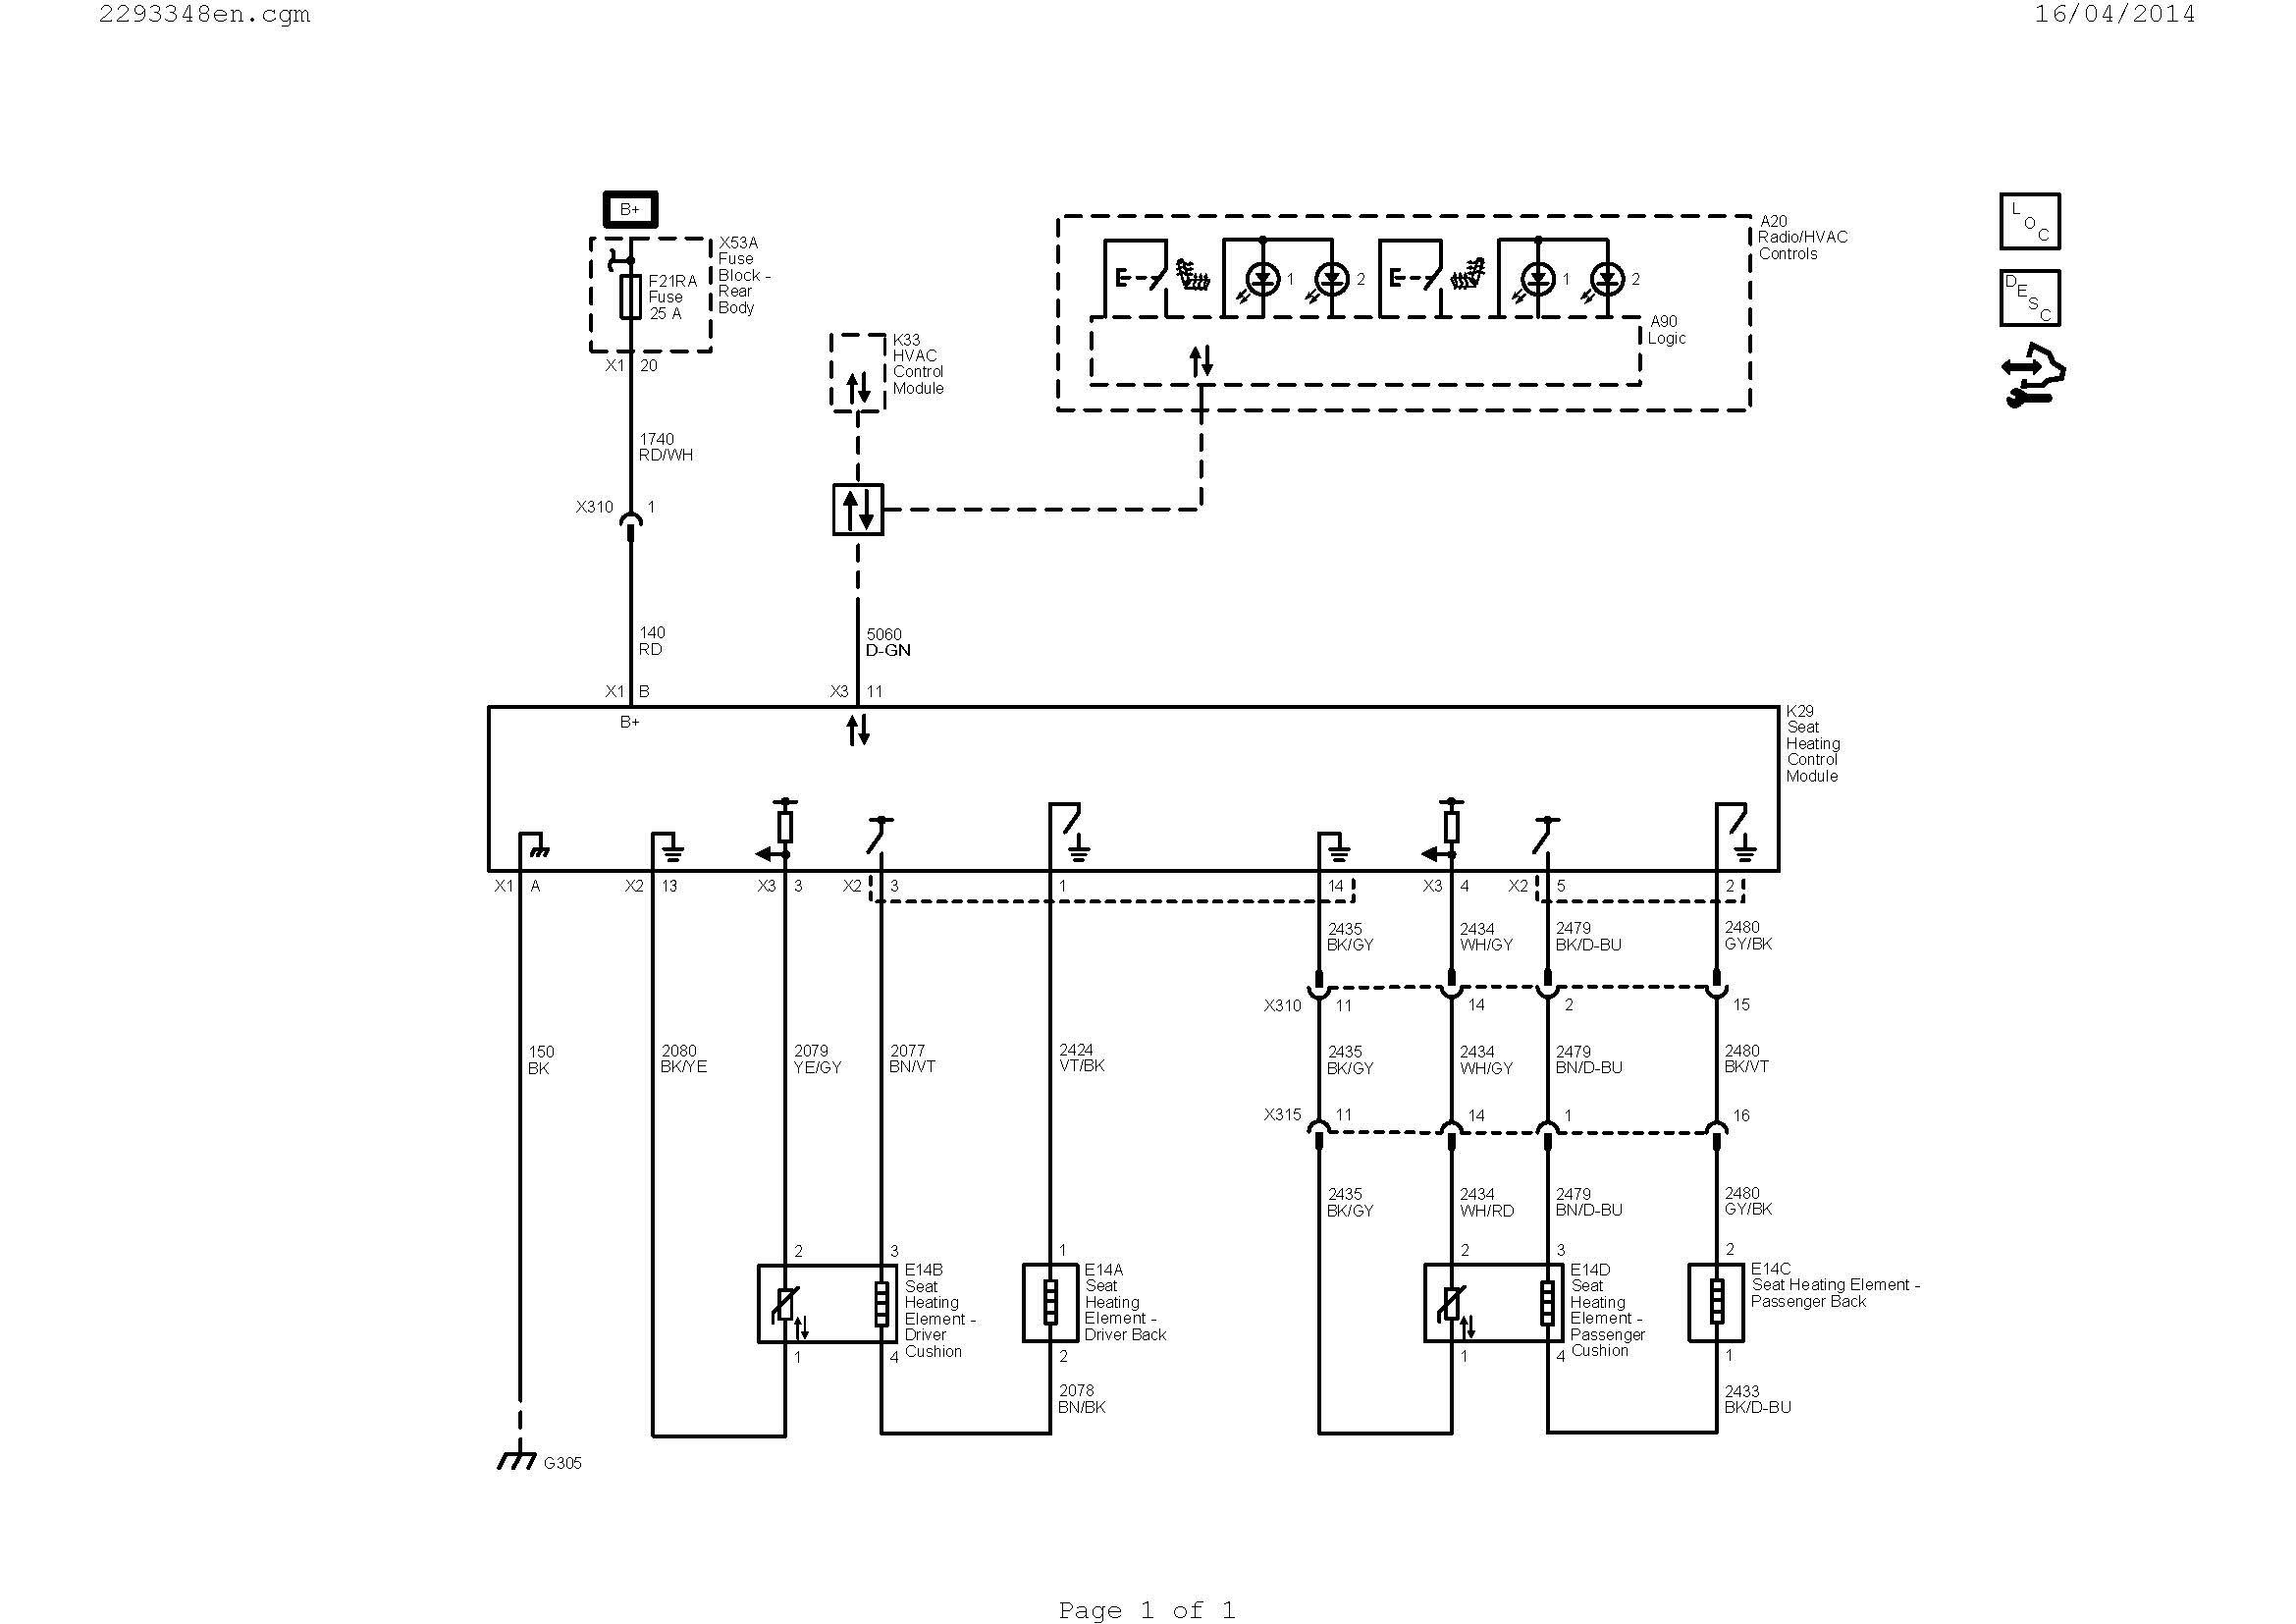 outback radian wiring diagram Download-automotive ac diagram Download Wiring Diagrams For Central Heating Refrence Hvac Diagram Best Hvac Diagram 18-l